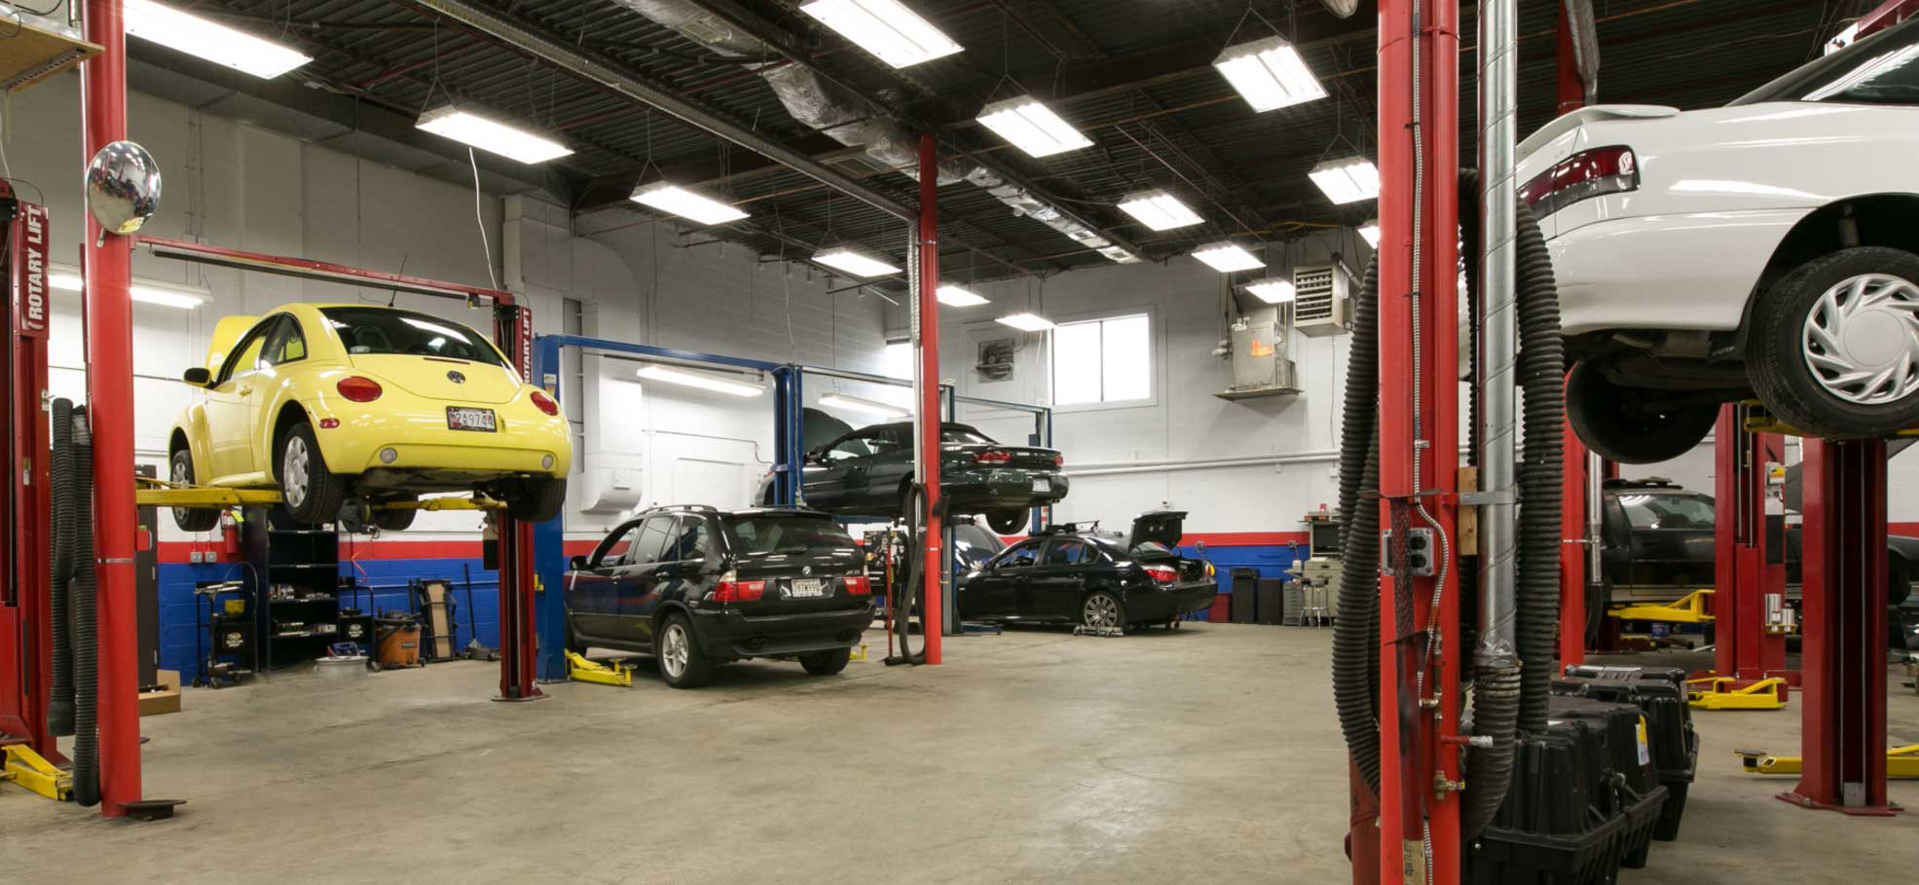 Gili s automotive in rockville md rockville auto repair Auto motor repair